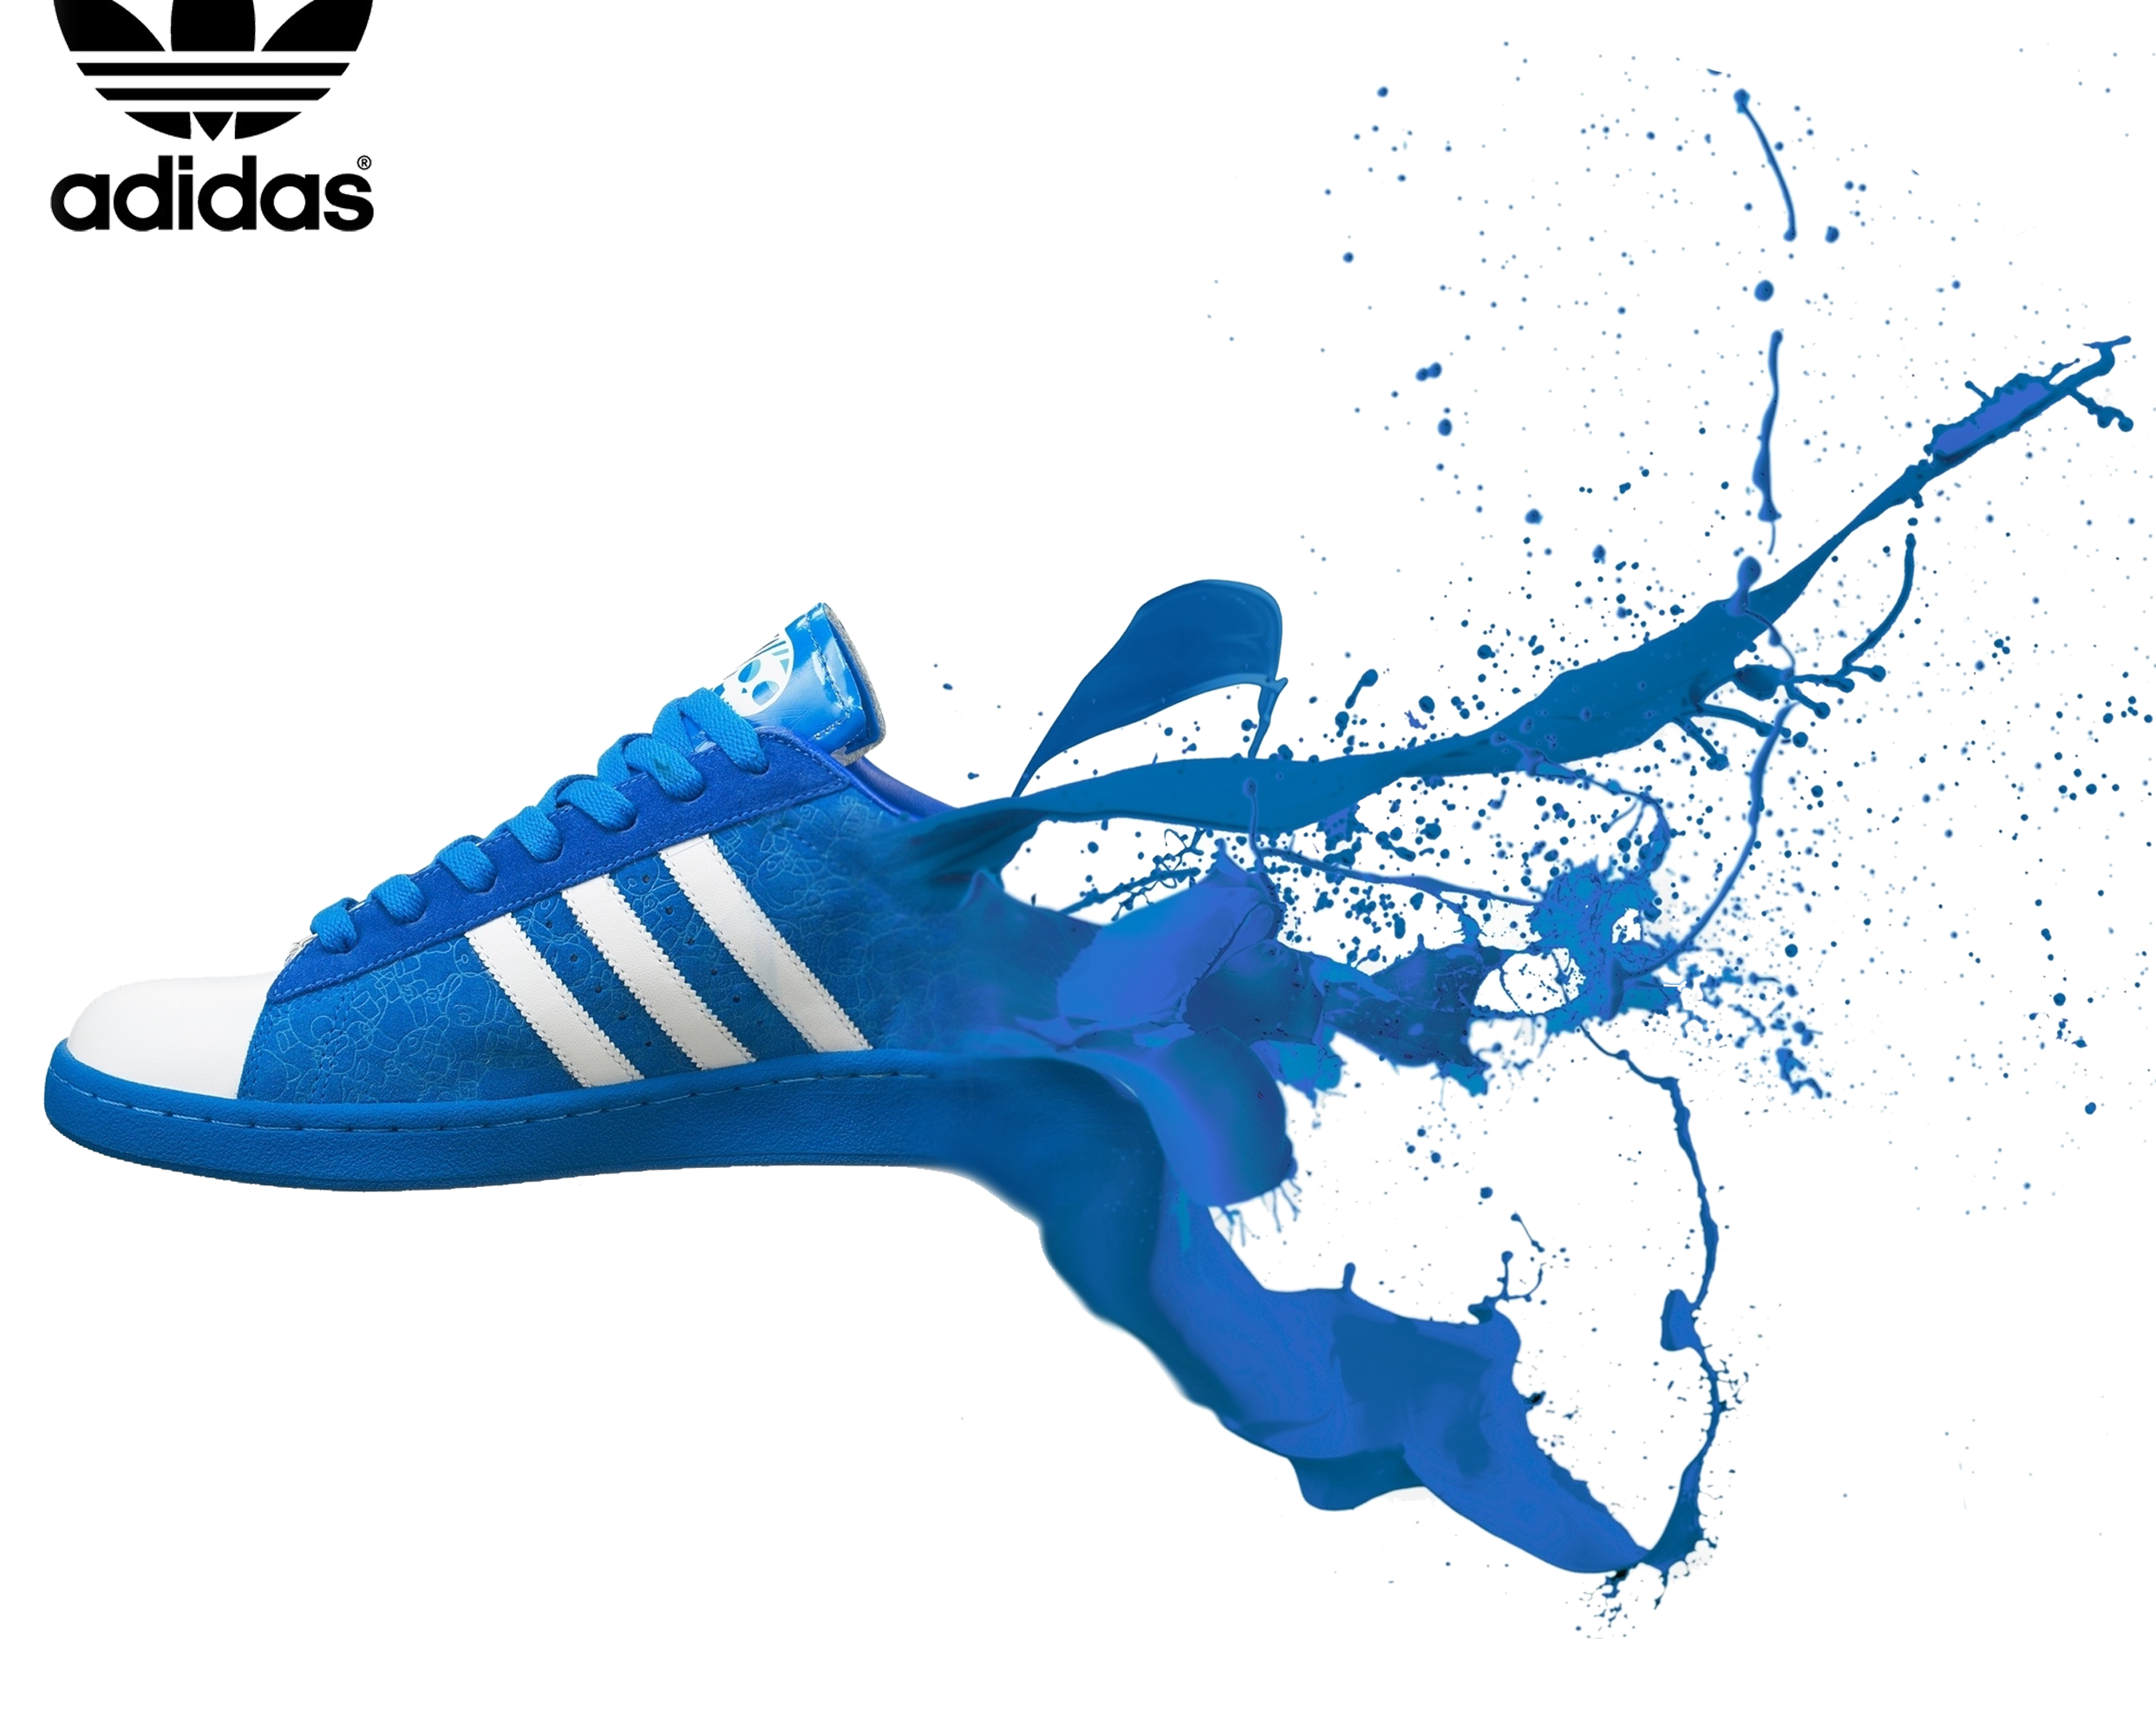 Originals Adidas Football Boot Running Sneakers Shoe PNG Image